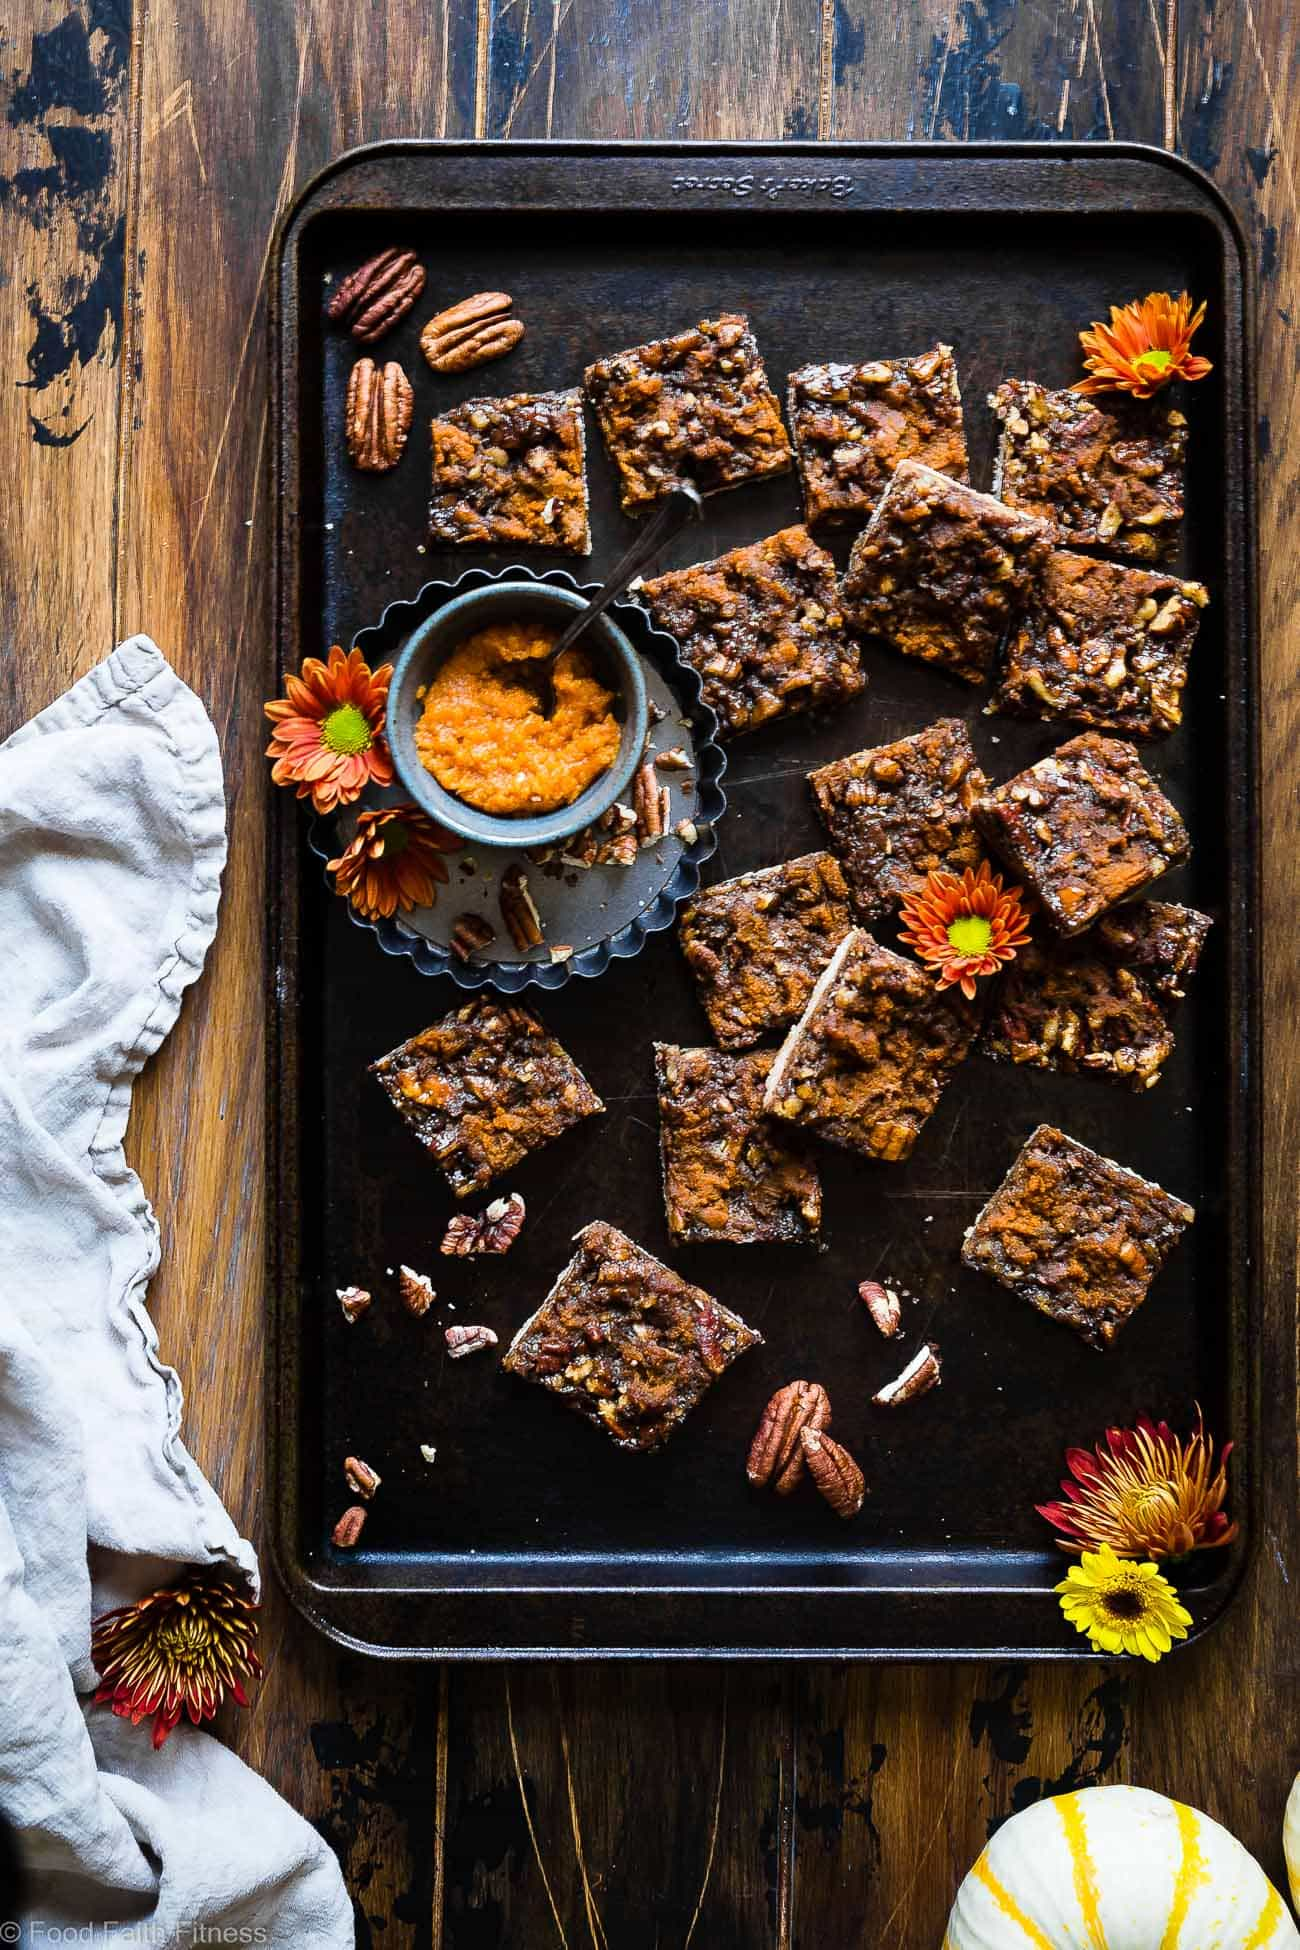 Pumpkin Spice Paleo Vegan Pecan Pie Bars - These easy vegan pecan pie bars are only 8 ingredients and have a pumpkin spice spin! A gluten/grain/dairy/egg free dessert for Thanksgiving that's paleo friendly! | Foodfaithfitness.com | @FoodFaithFit